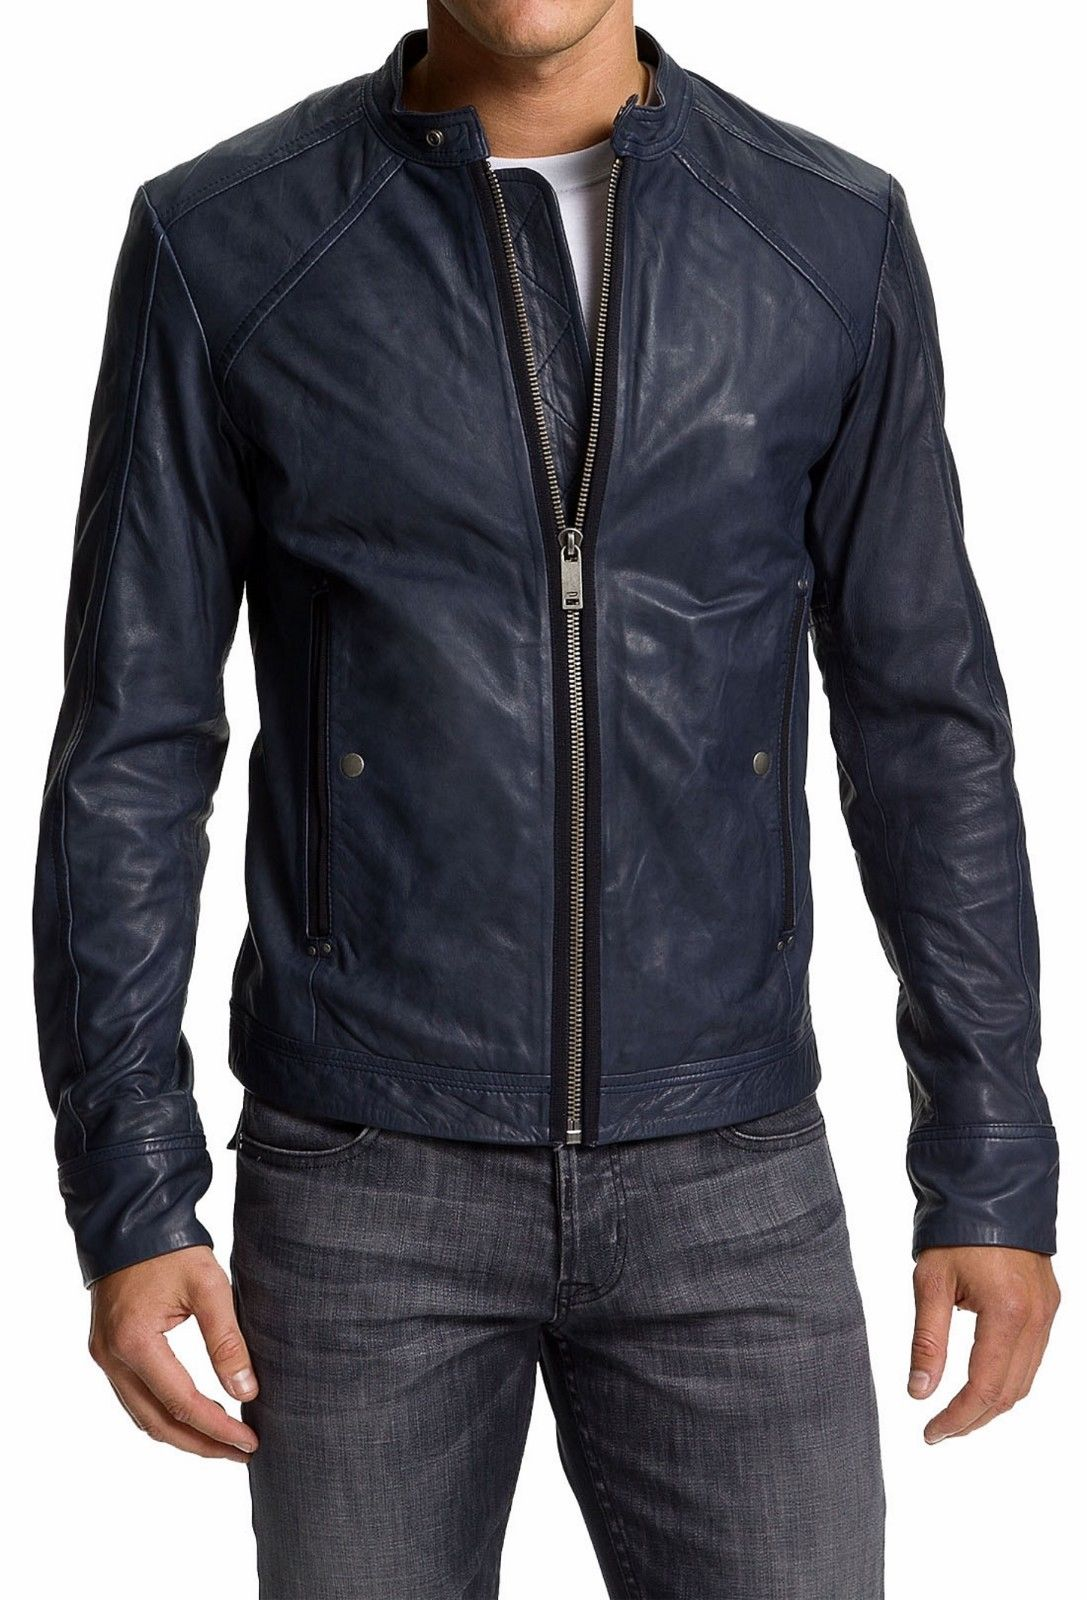 Men Navy Blue Biker Jacket Mens Leather Jacket Blue Leather Jackets For Men